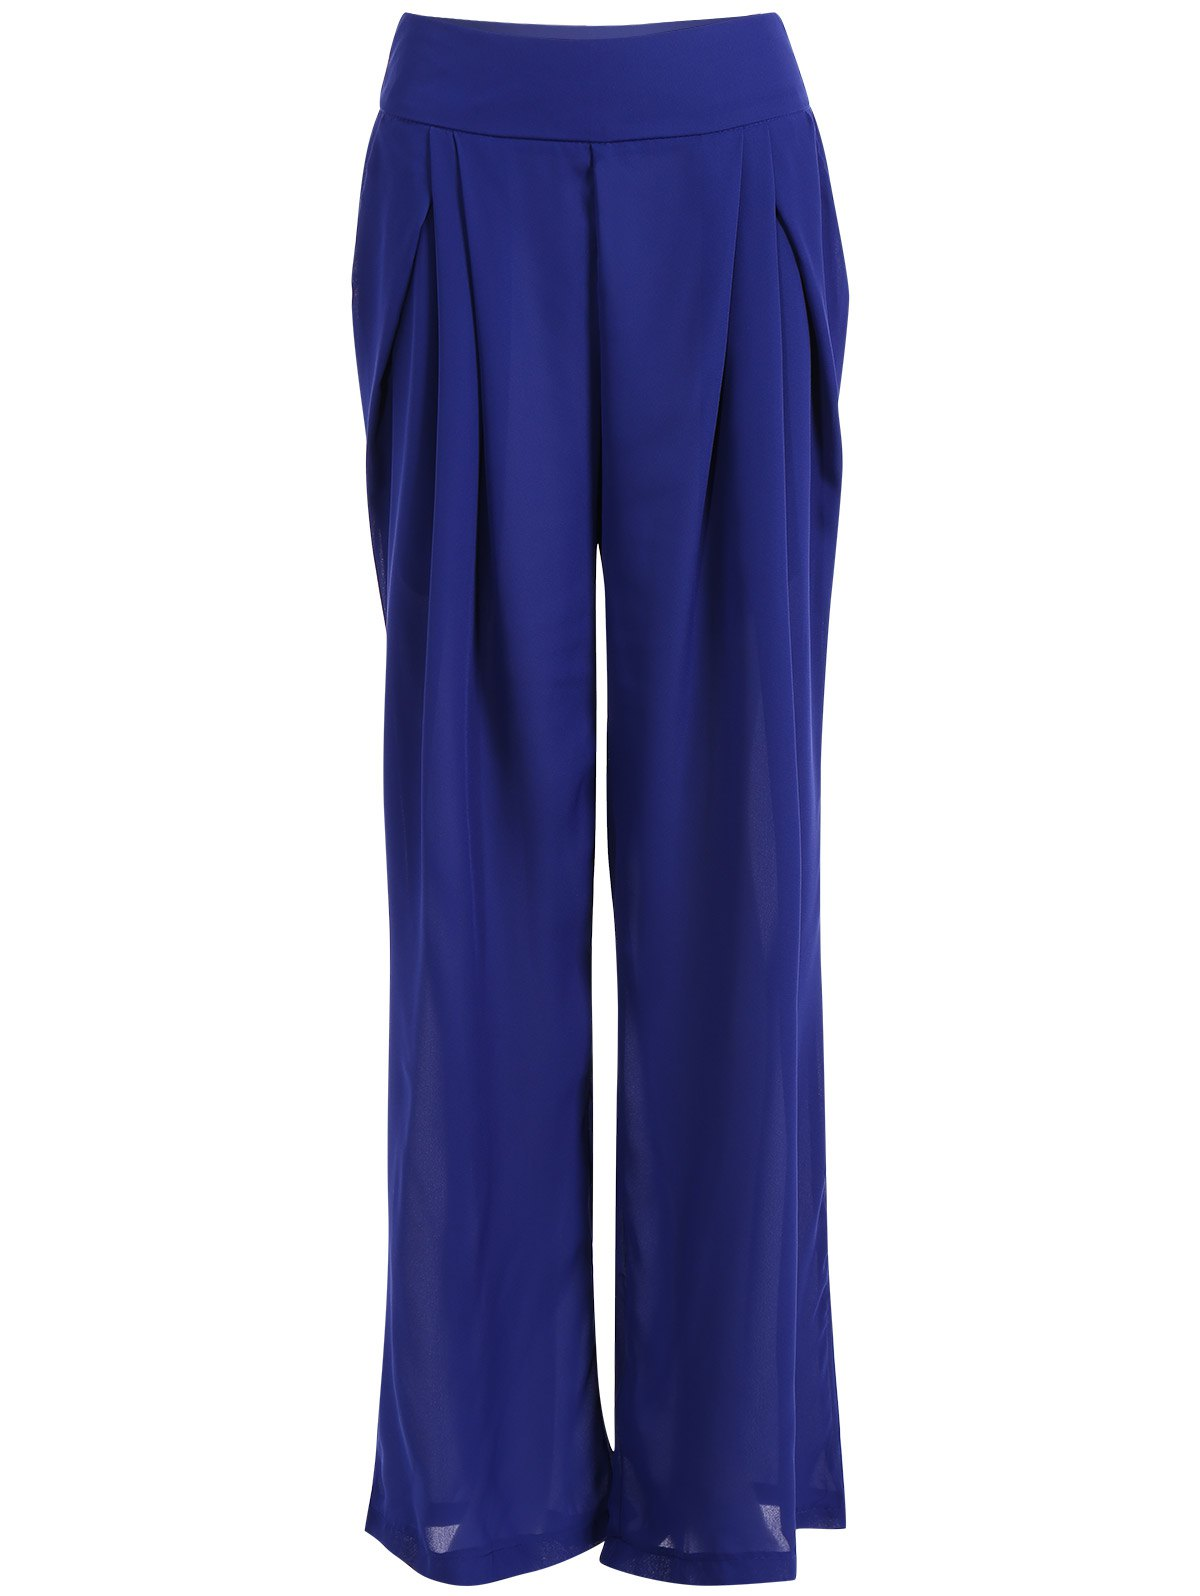 High Waisted Chiffon Culotte Pants